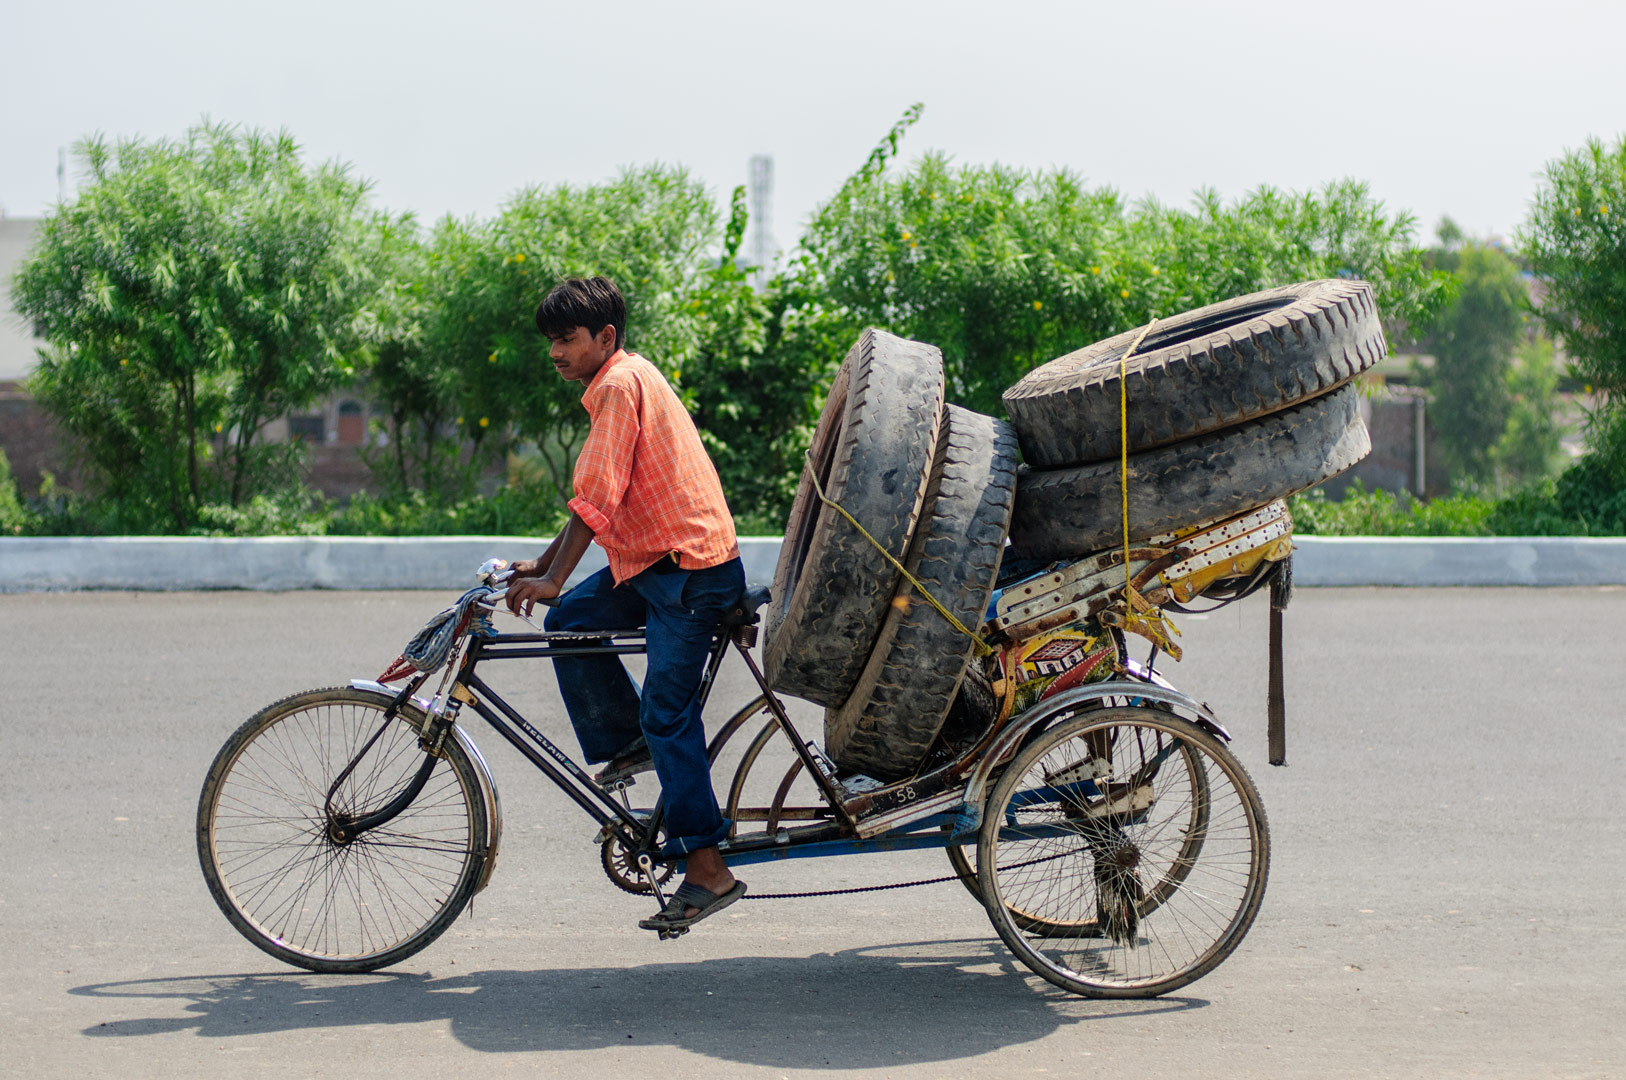 A rickshaw is loaded full of truck tires in North India.